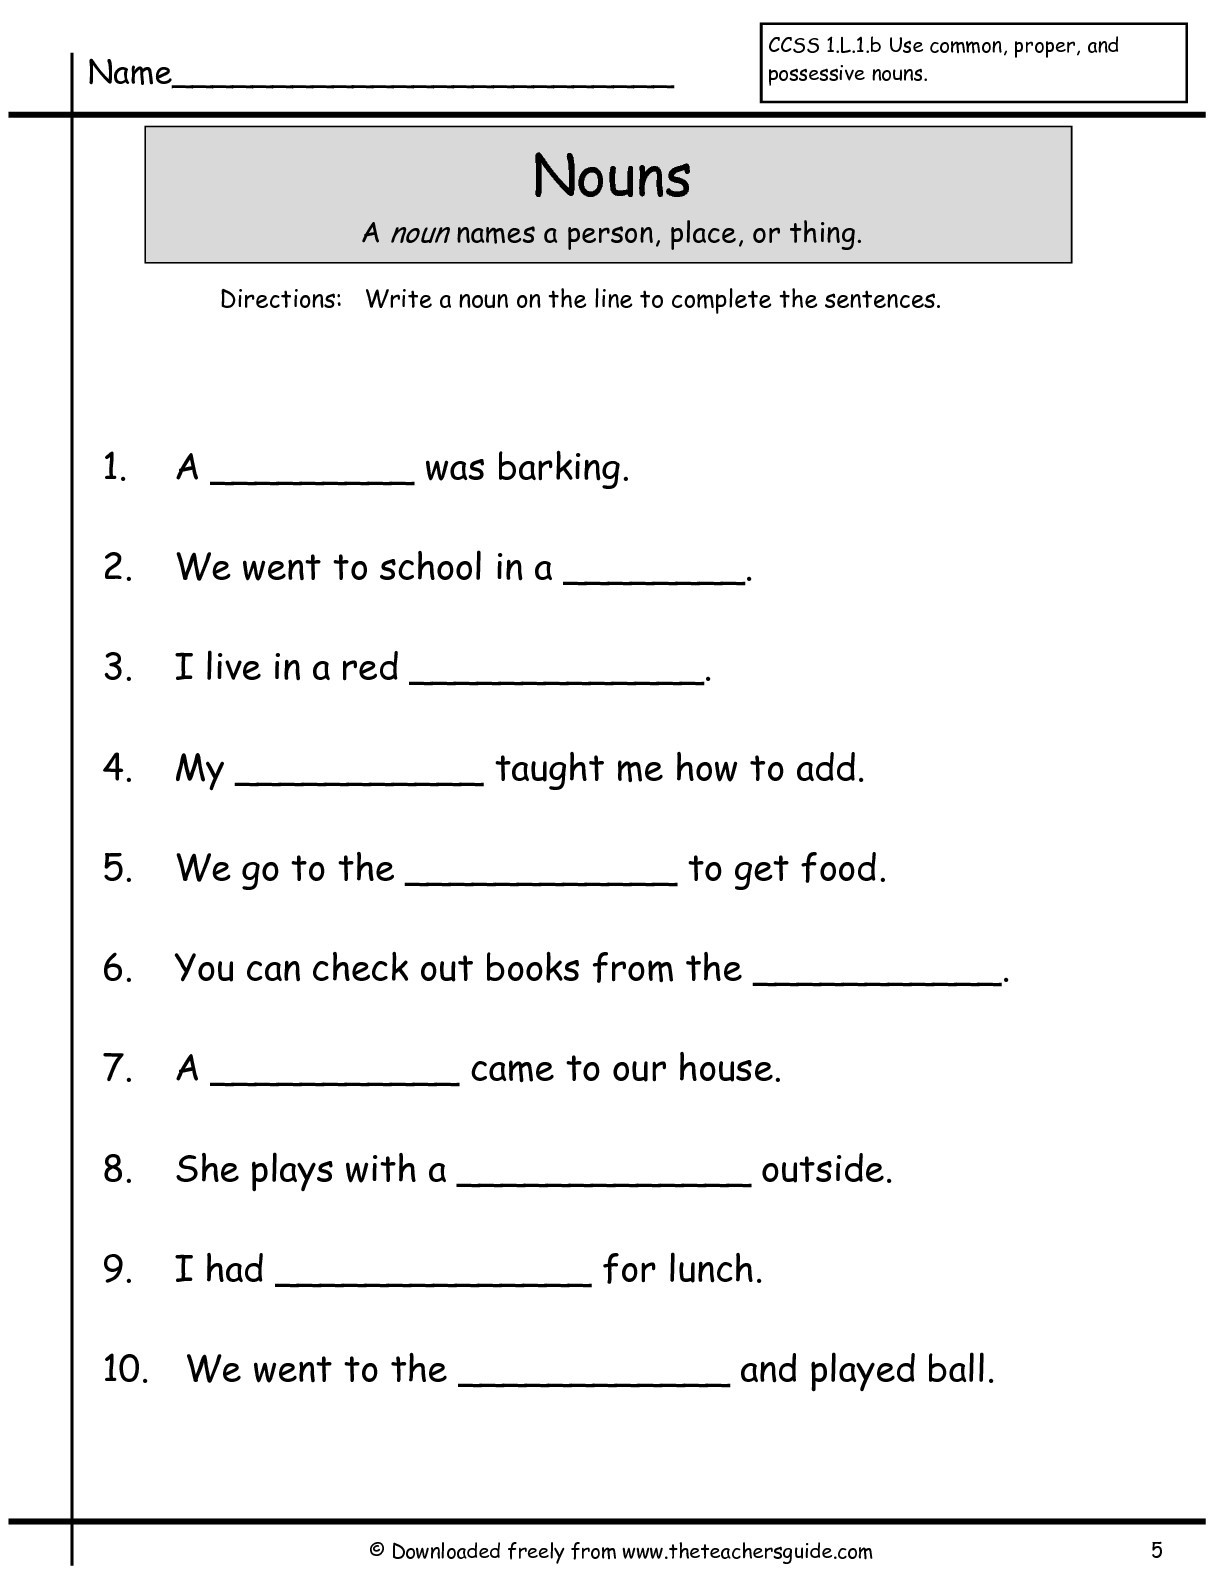 Complete Sentences Worksheets 1st Grade Mcgraw Hill Wonders 1st Grade Resources and Printouts for